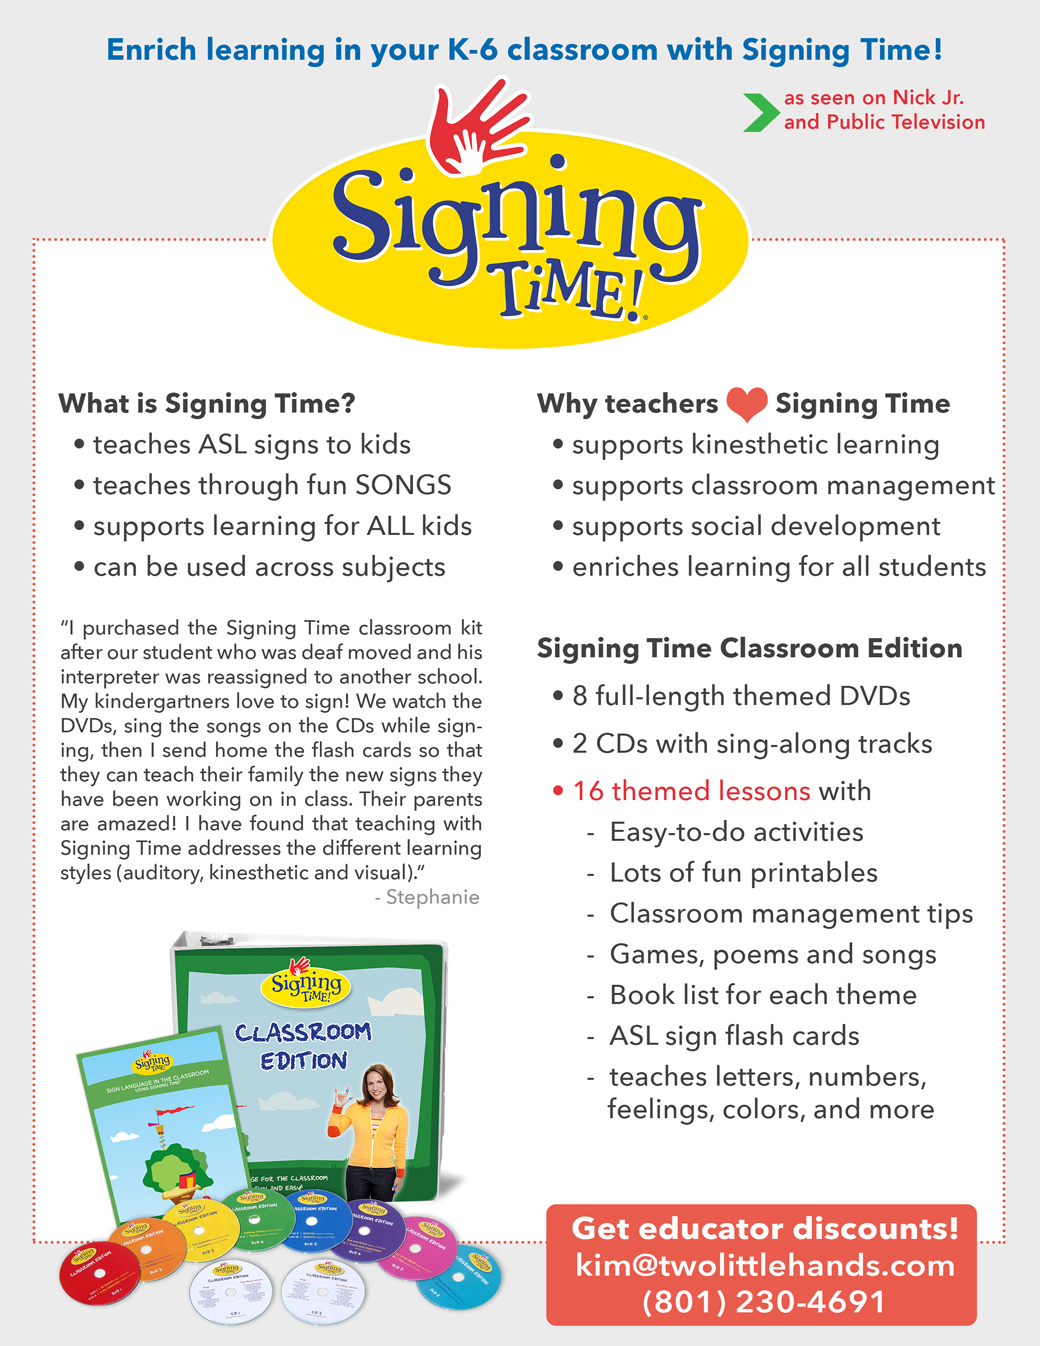 Signing Time Classroom Edition